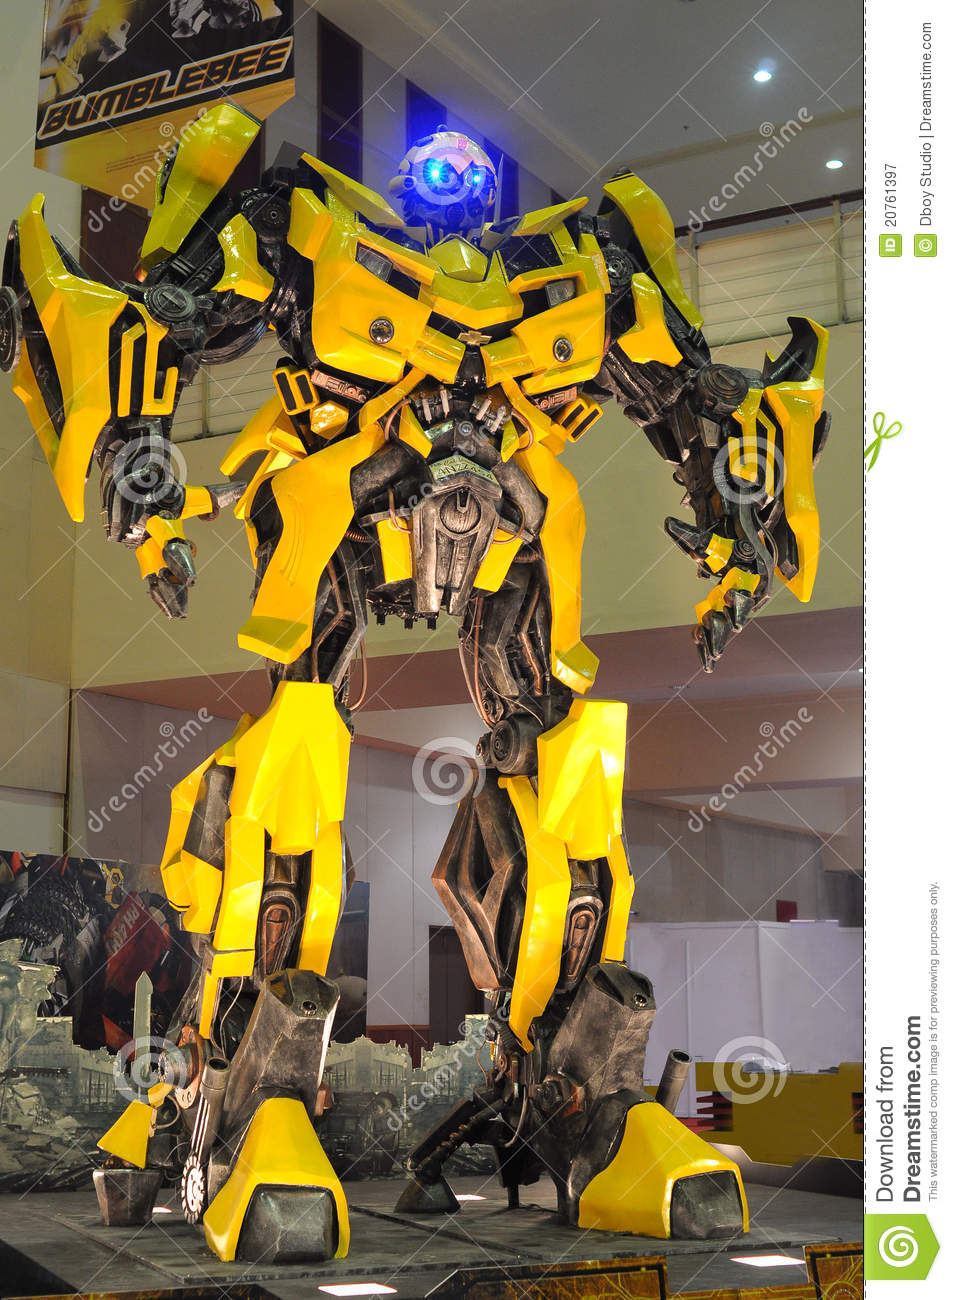 Replica Of Bumblebee From Transformers Were Displa